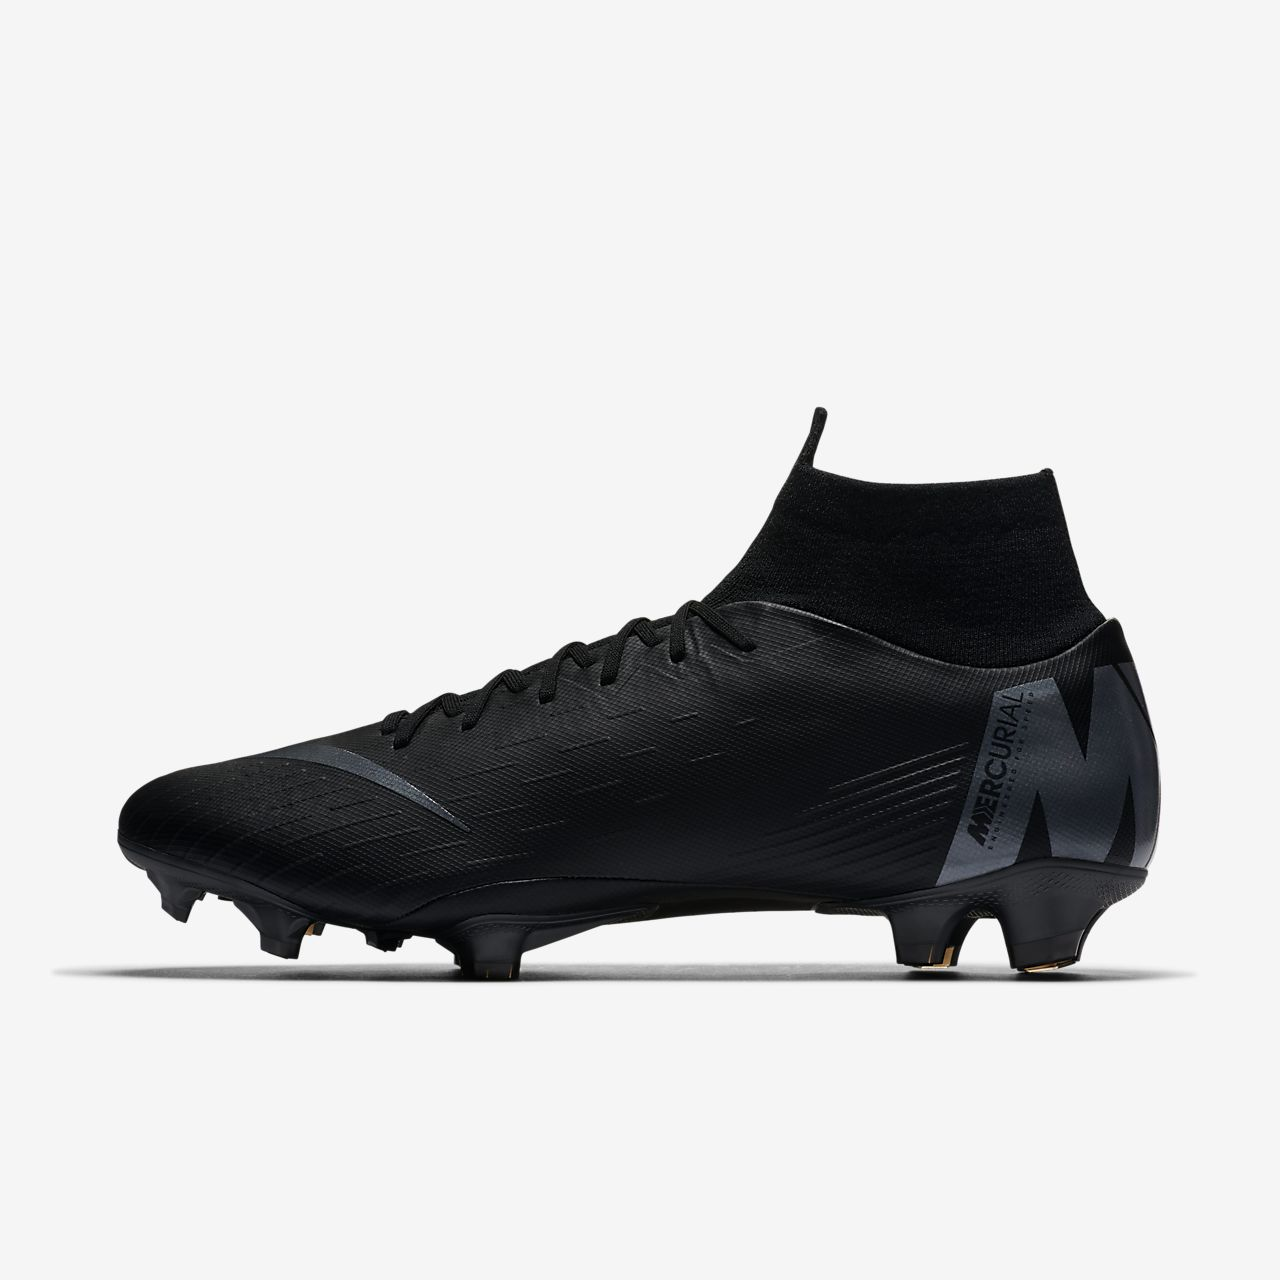 Nike Mercurial Superfly VI Pro Firm-Ground Soccer Cleat ...